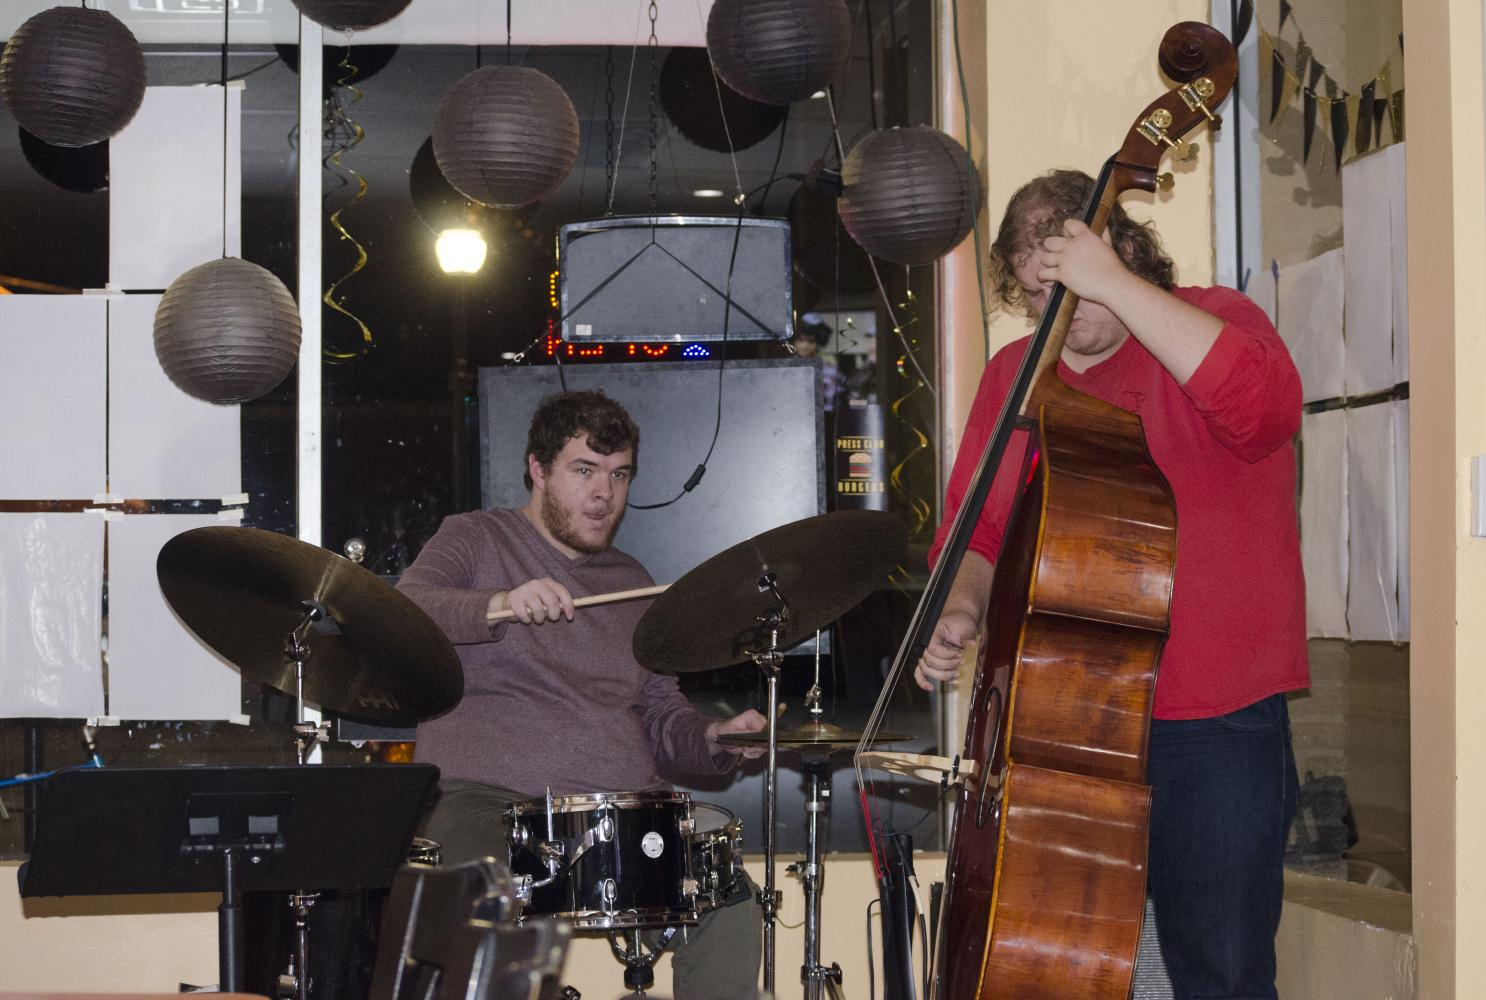 Jazz studies majors Lars Swanson, Hogan Bentle and Cody Henley were the trio that performed a repertoire, plays or pieces of music that a musician has learned.